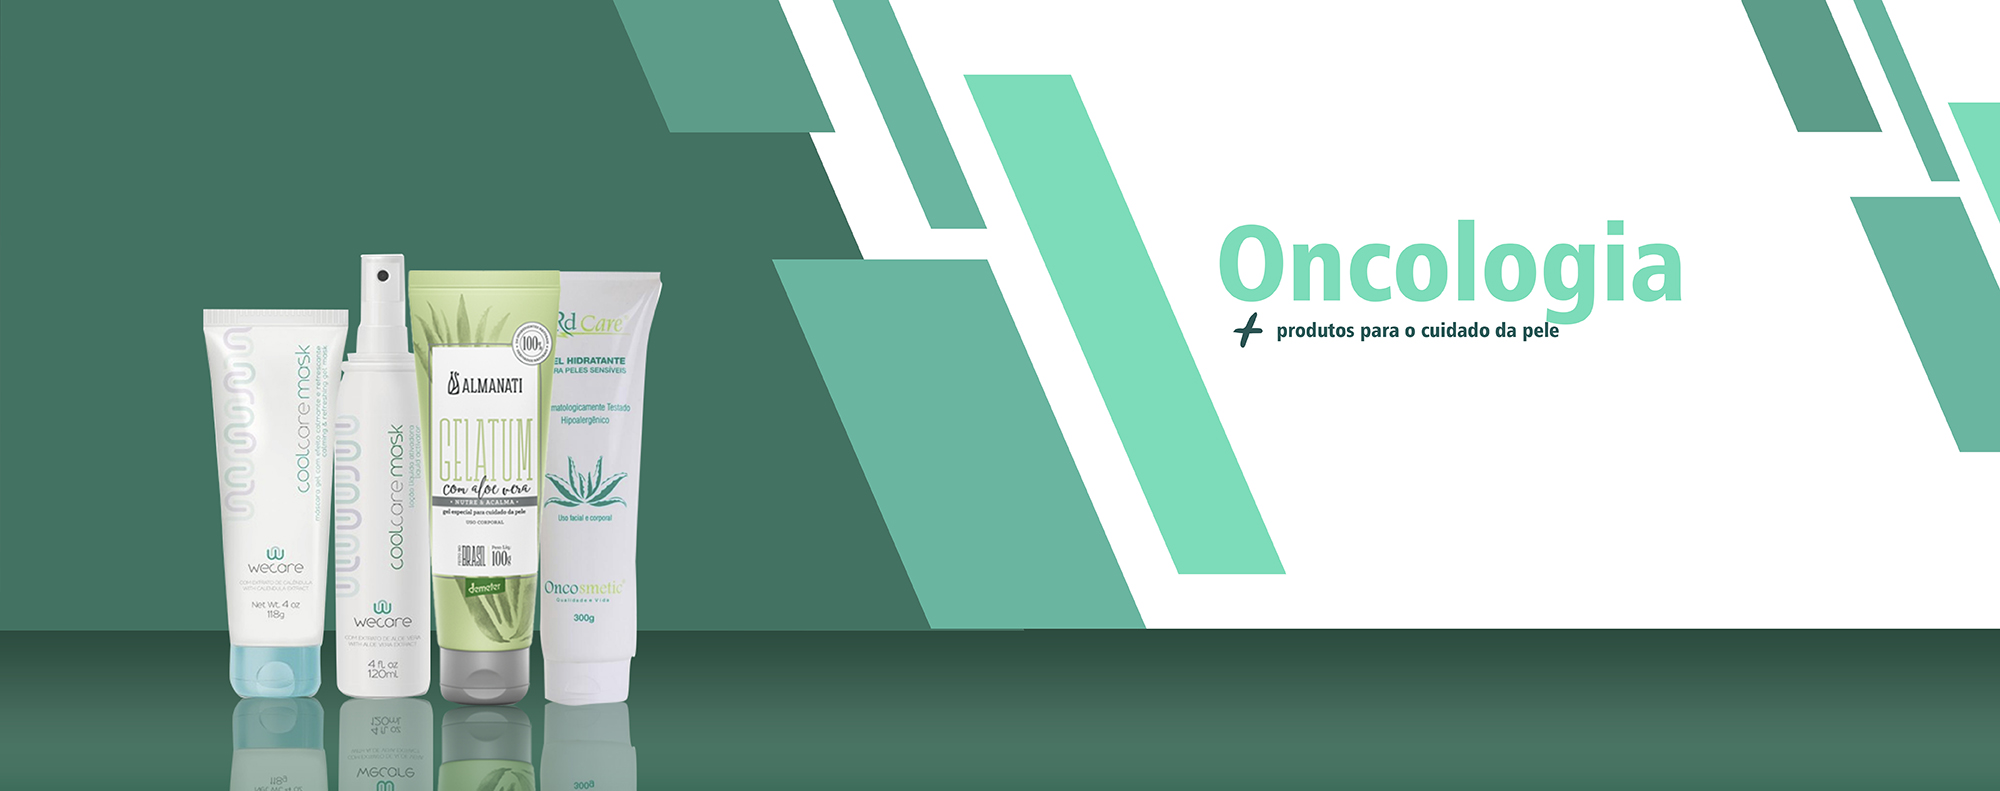 banner Oncologia